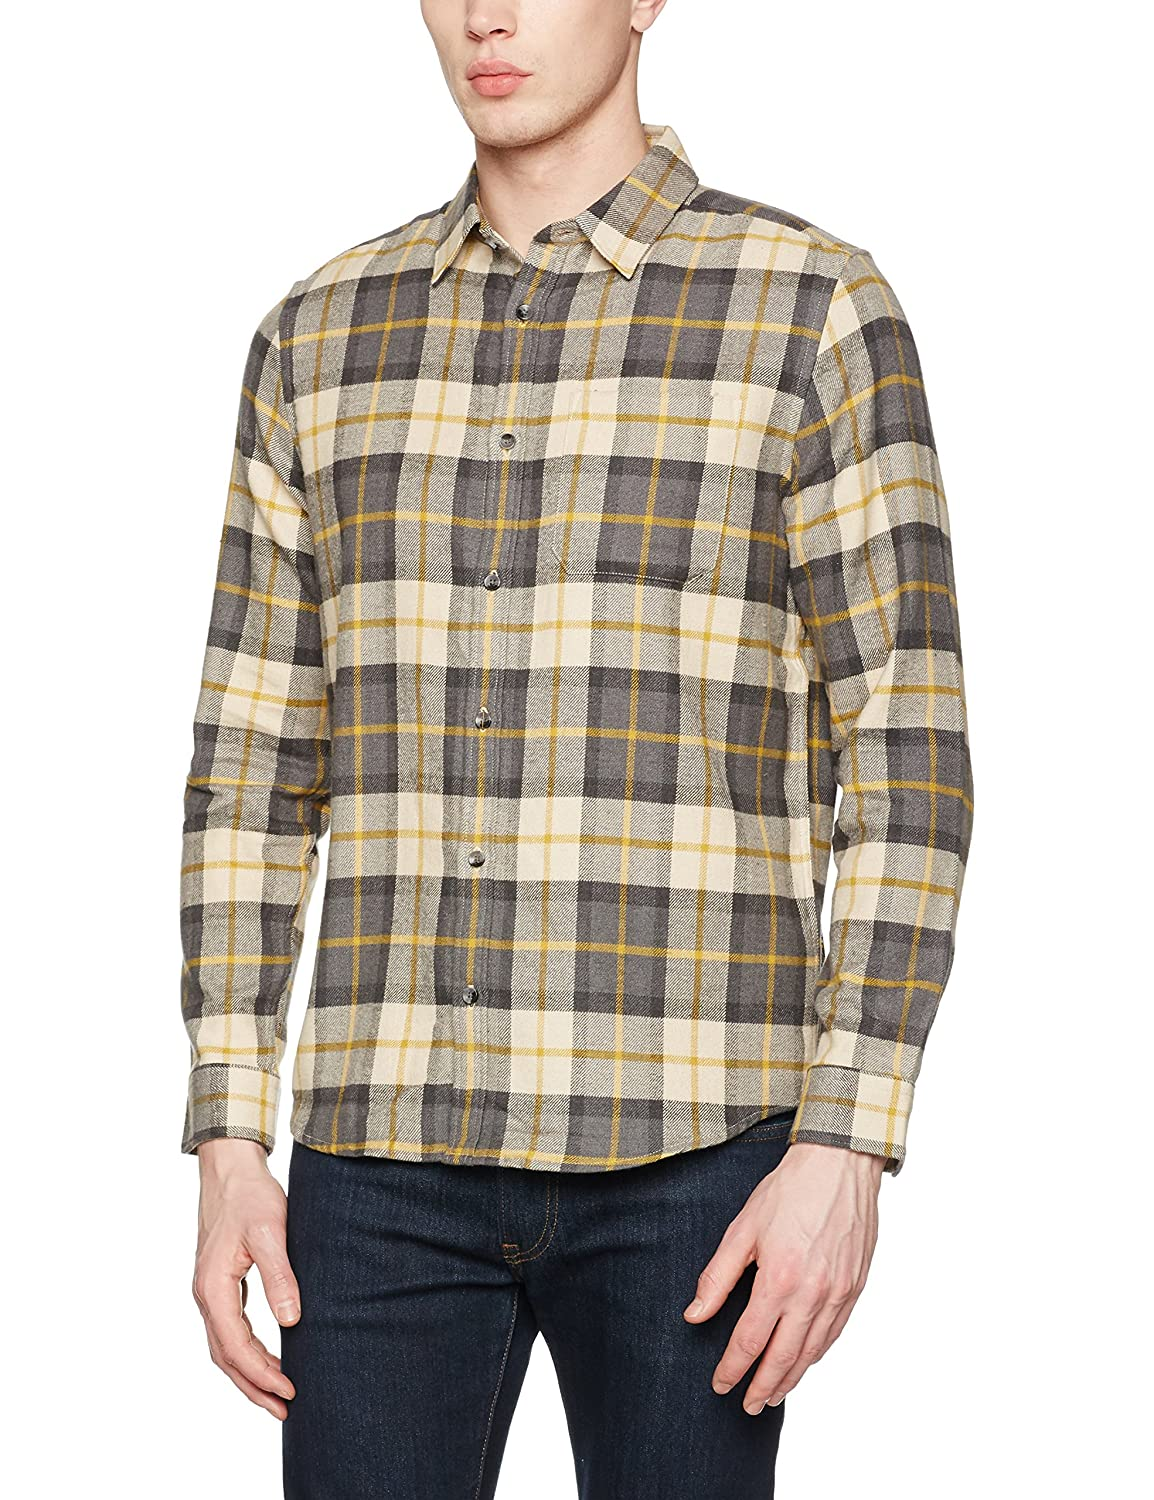 New Look Cumin Highlight Check Camisa Casual para Hombre